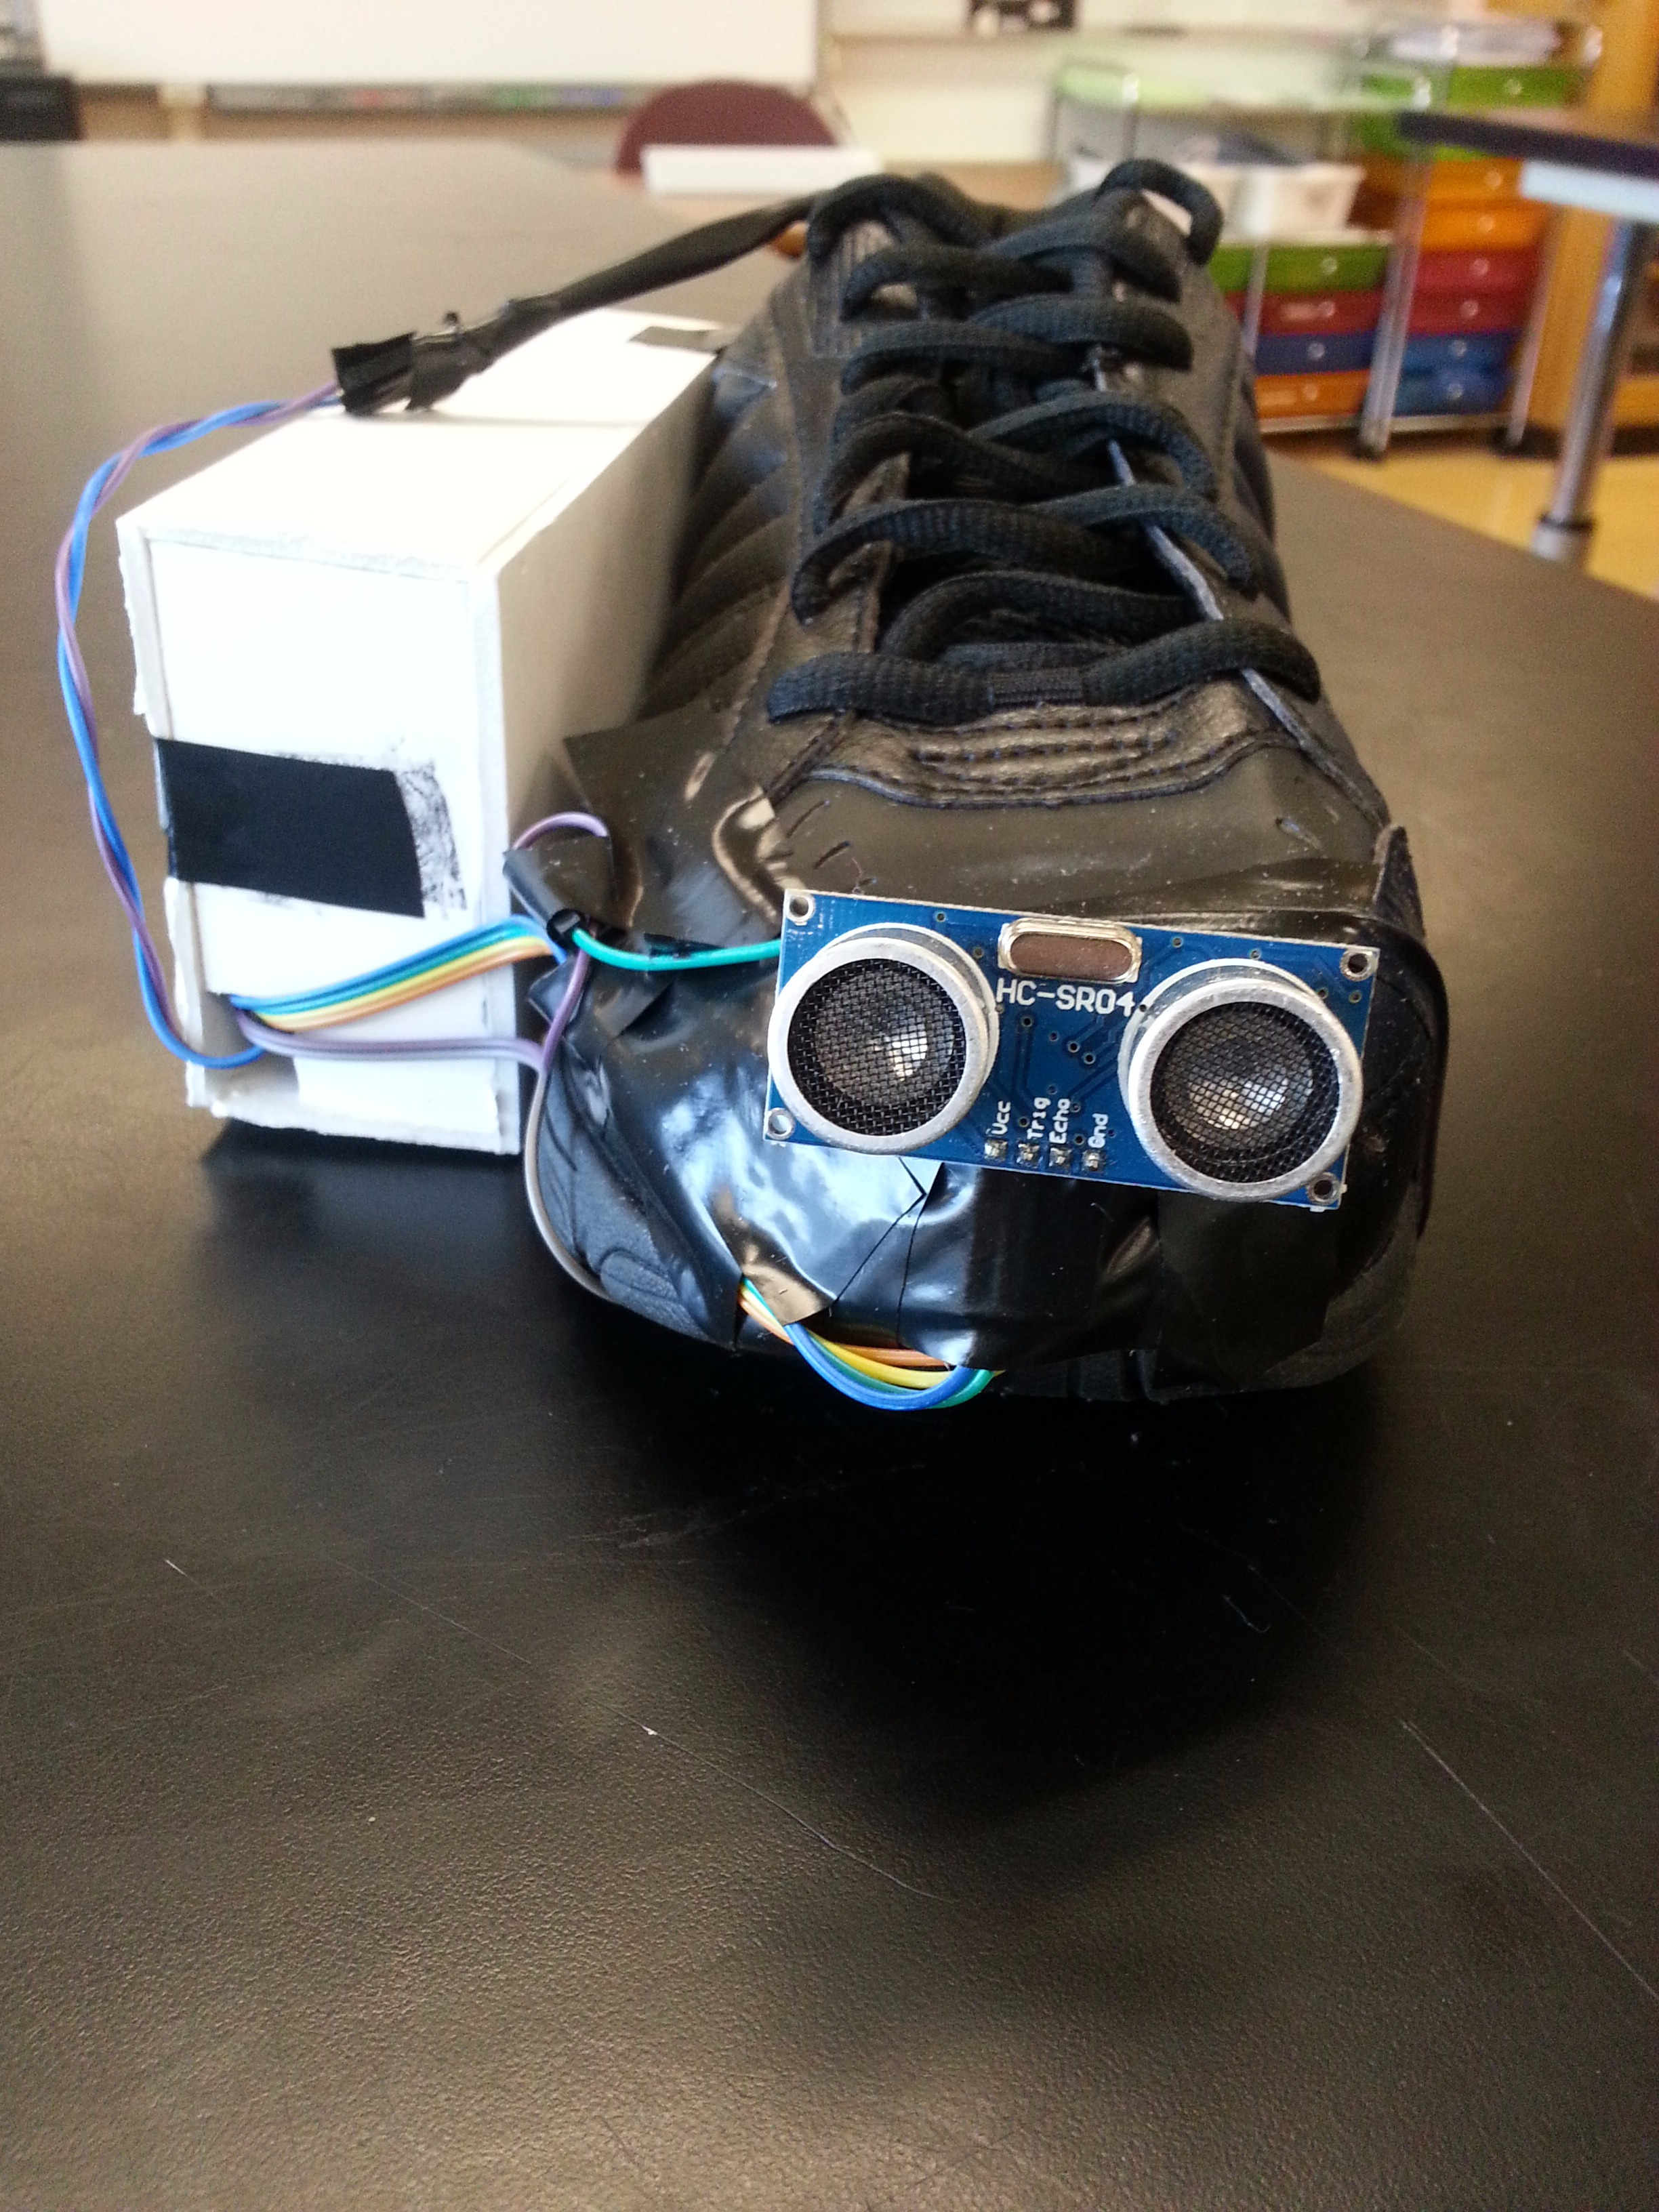 Picture of Vision Shoe (Shoe for the Blind)